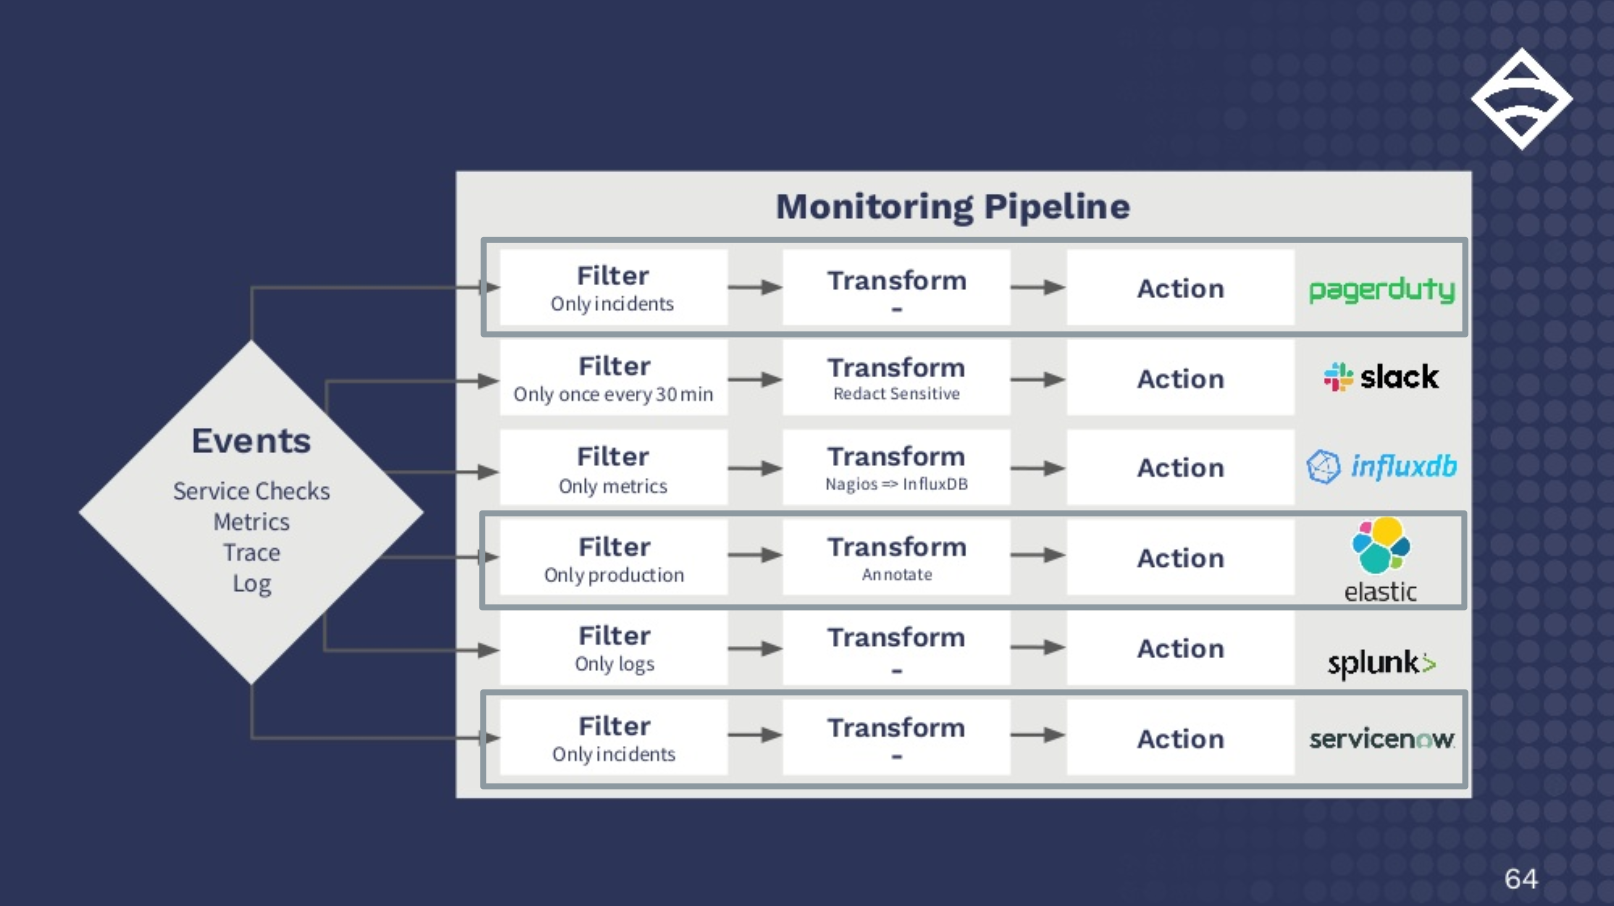 event monitoring pipeline